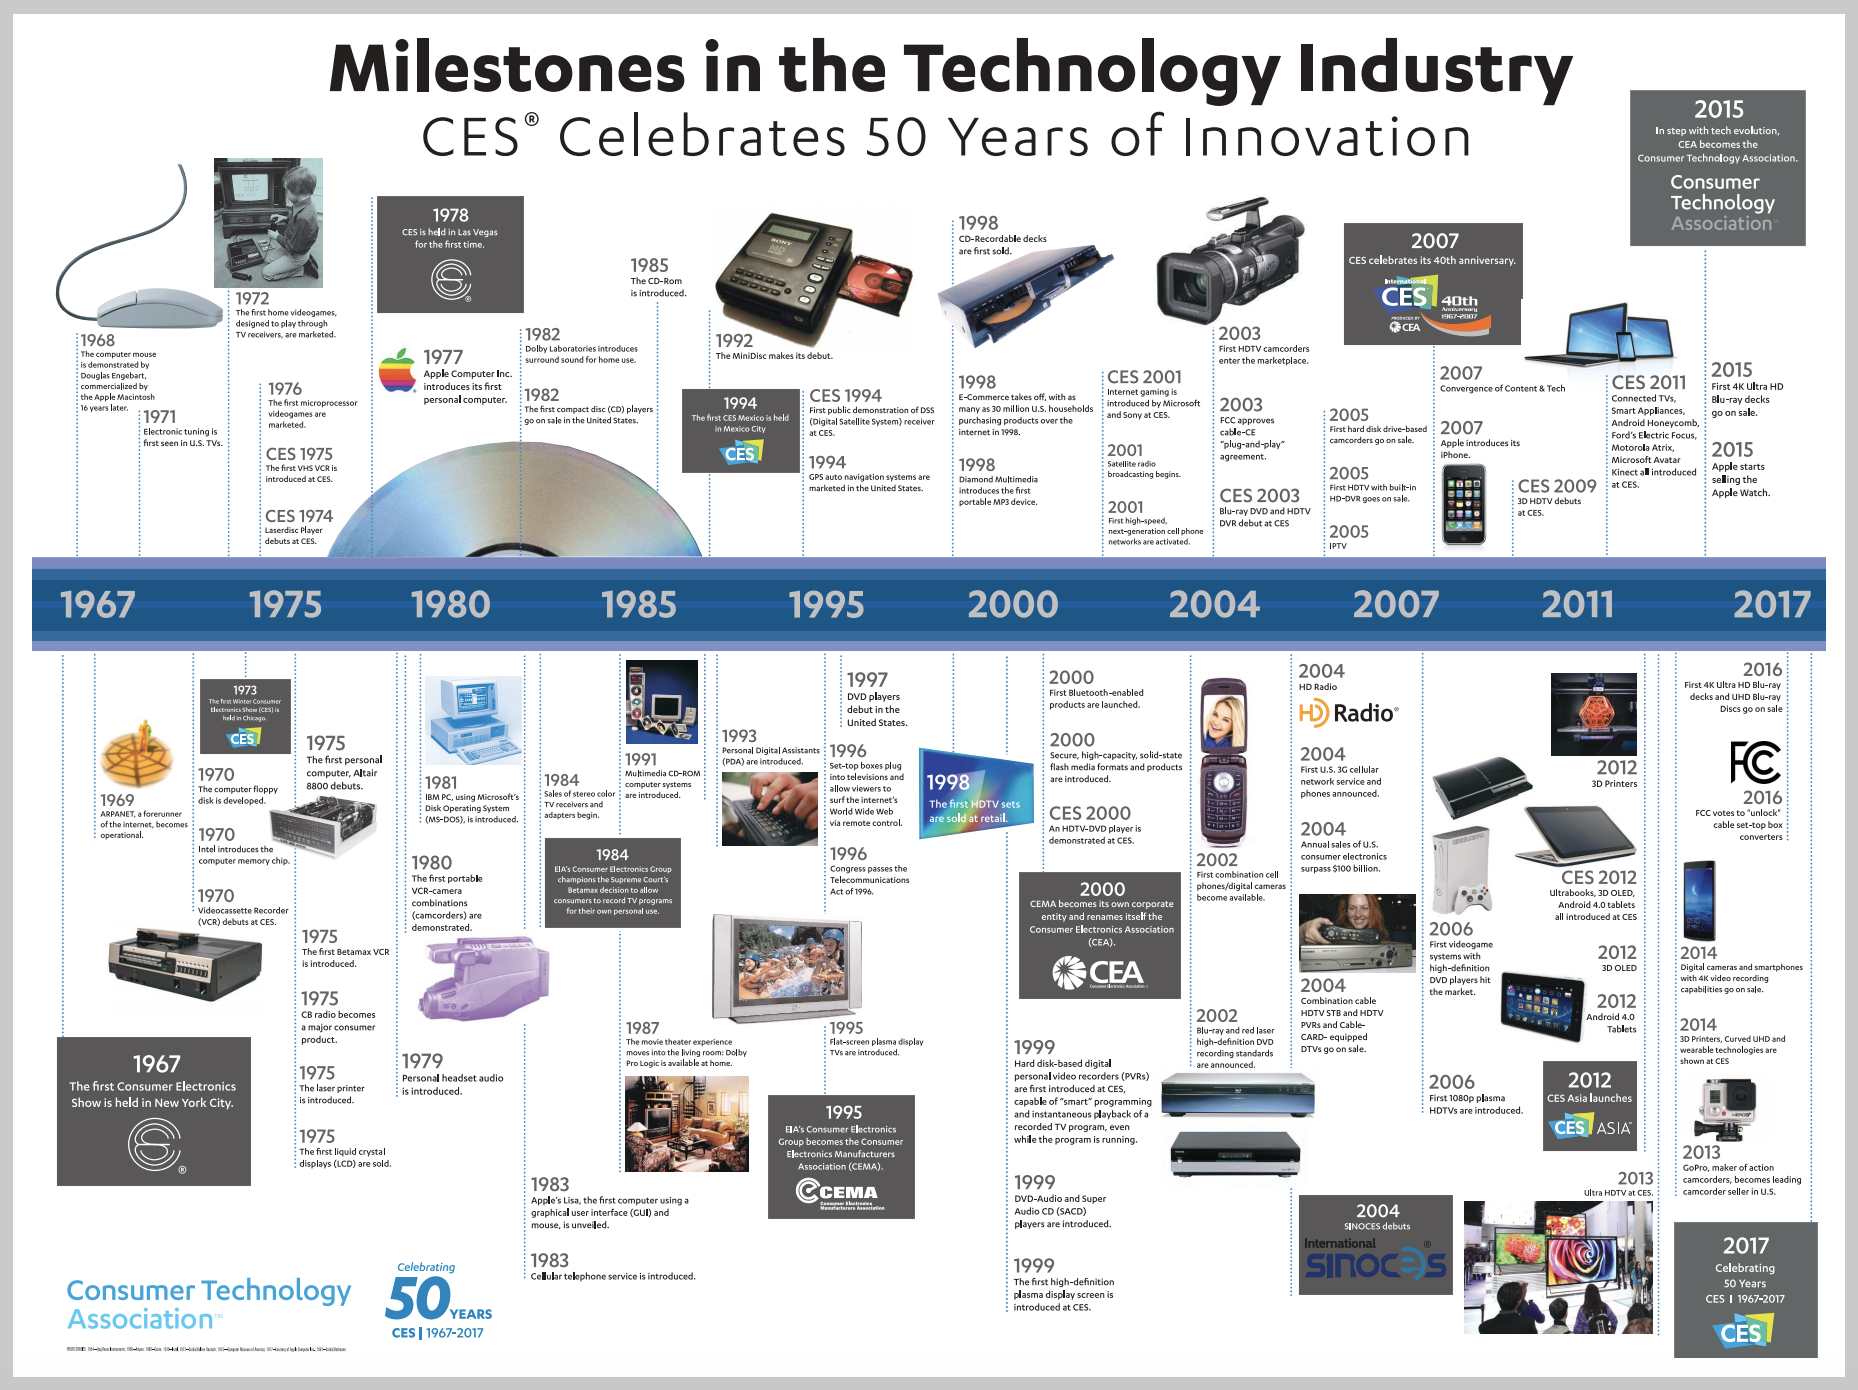 Milestones in the Technology Industry